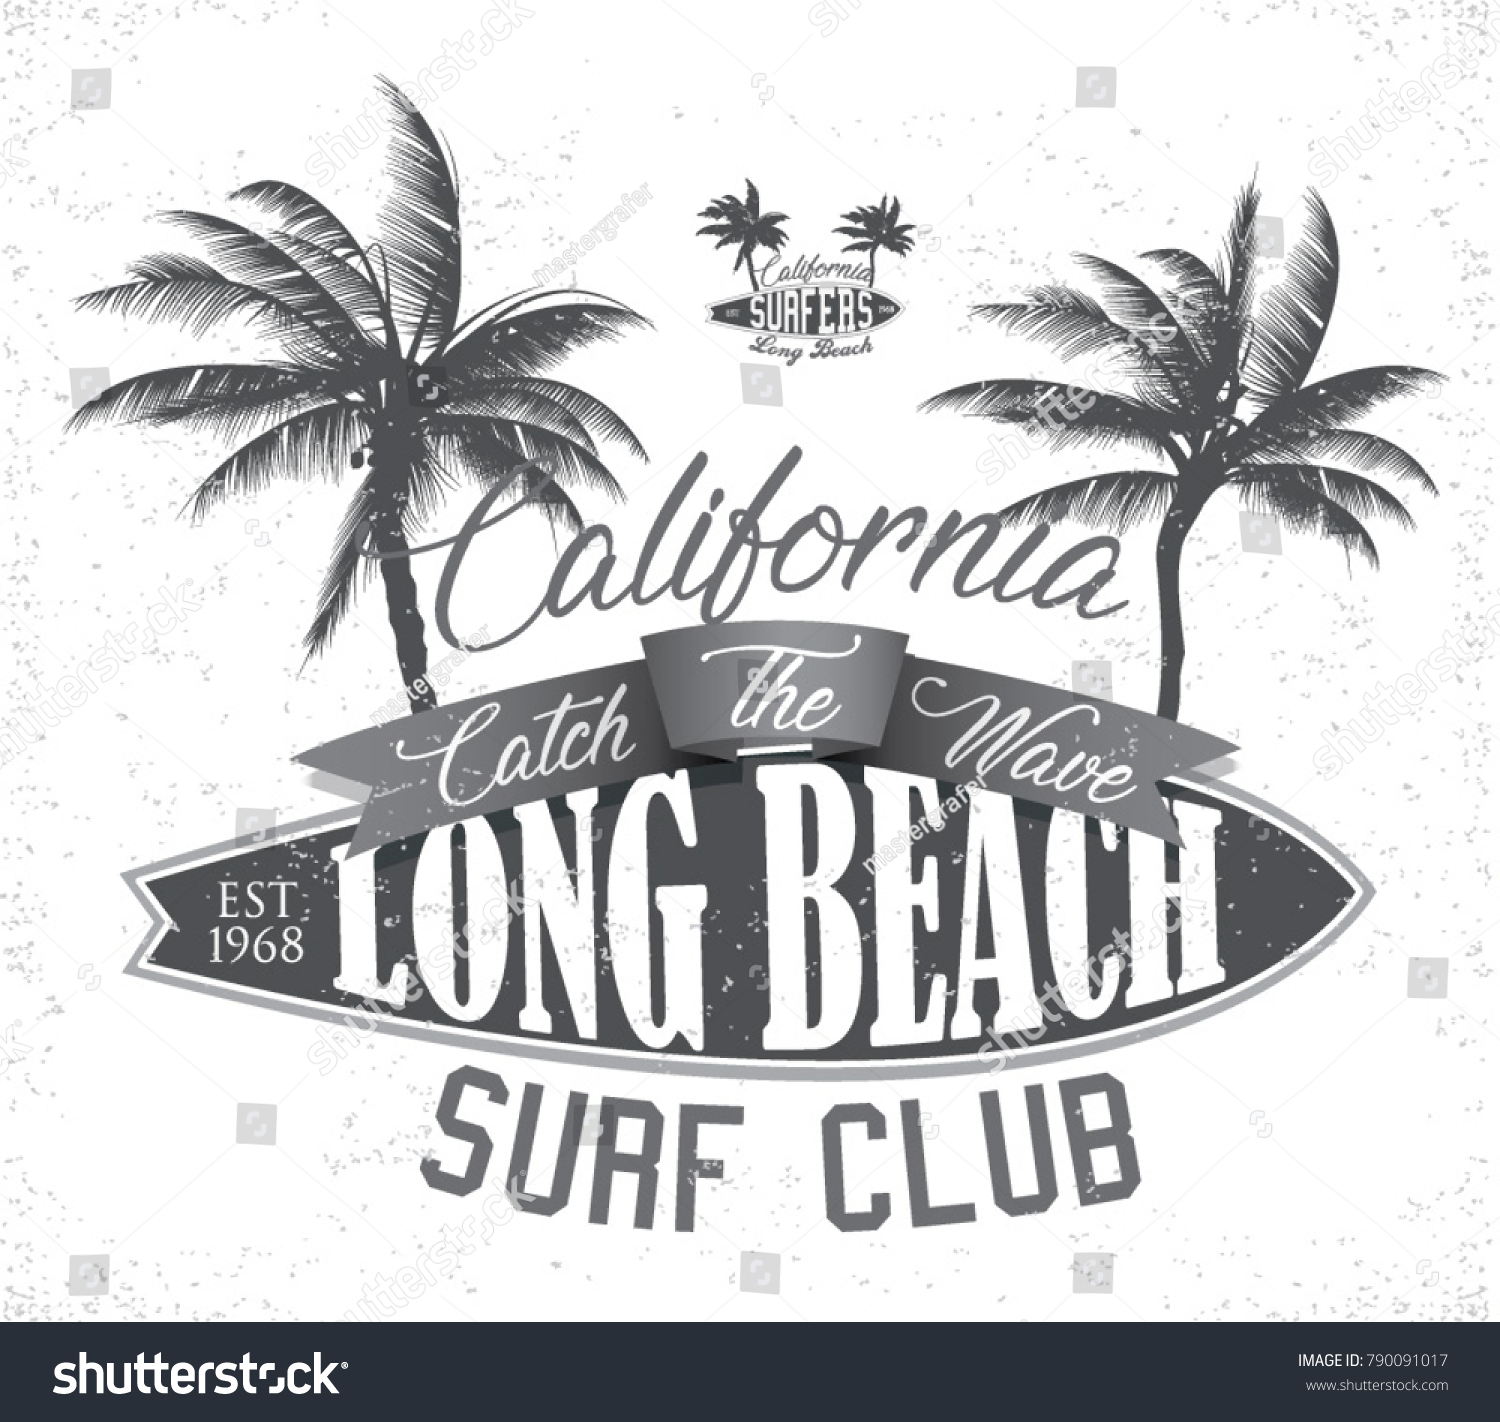 902c3c6a Vintage Surfing tee design. Retro t-shirt Graphics and Emblems for web or  print. Surfer, beach style logo . Surf Badge Surfboard seal, elements,  symbols.